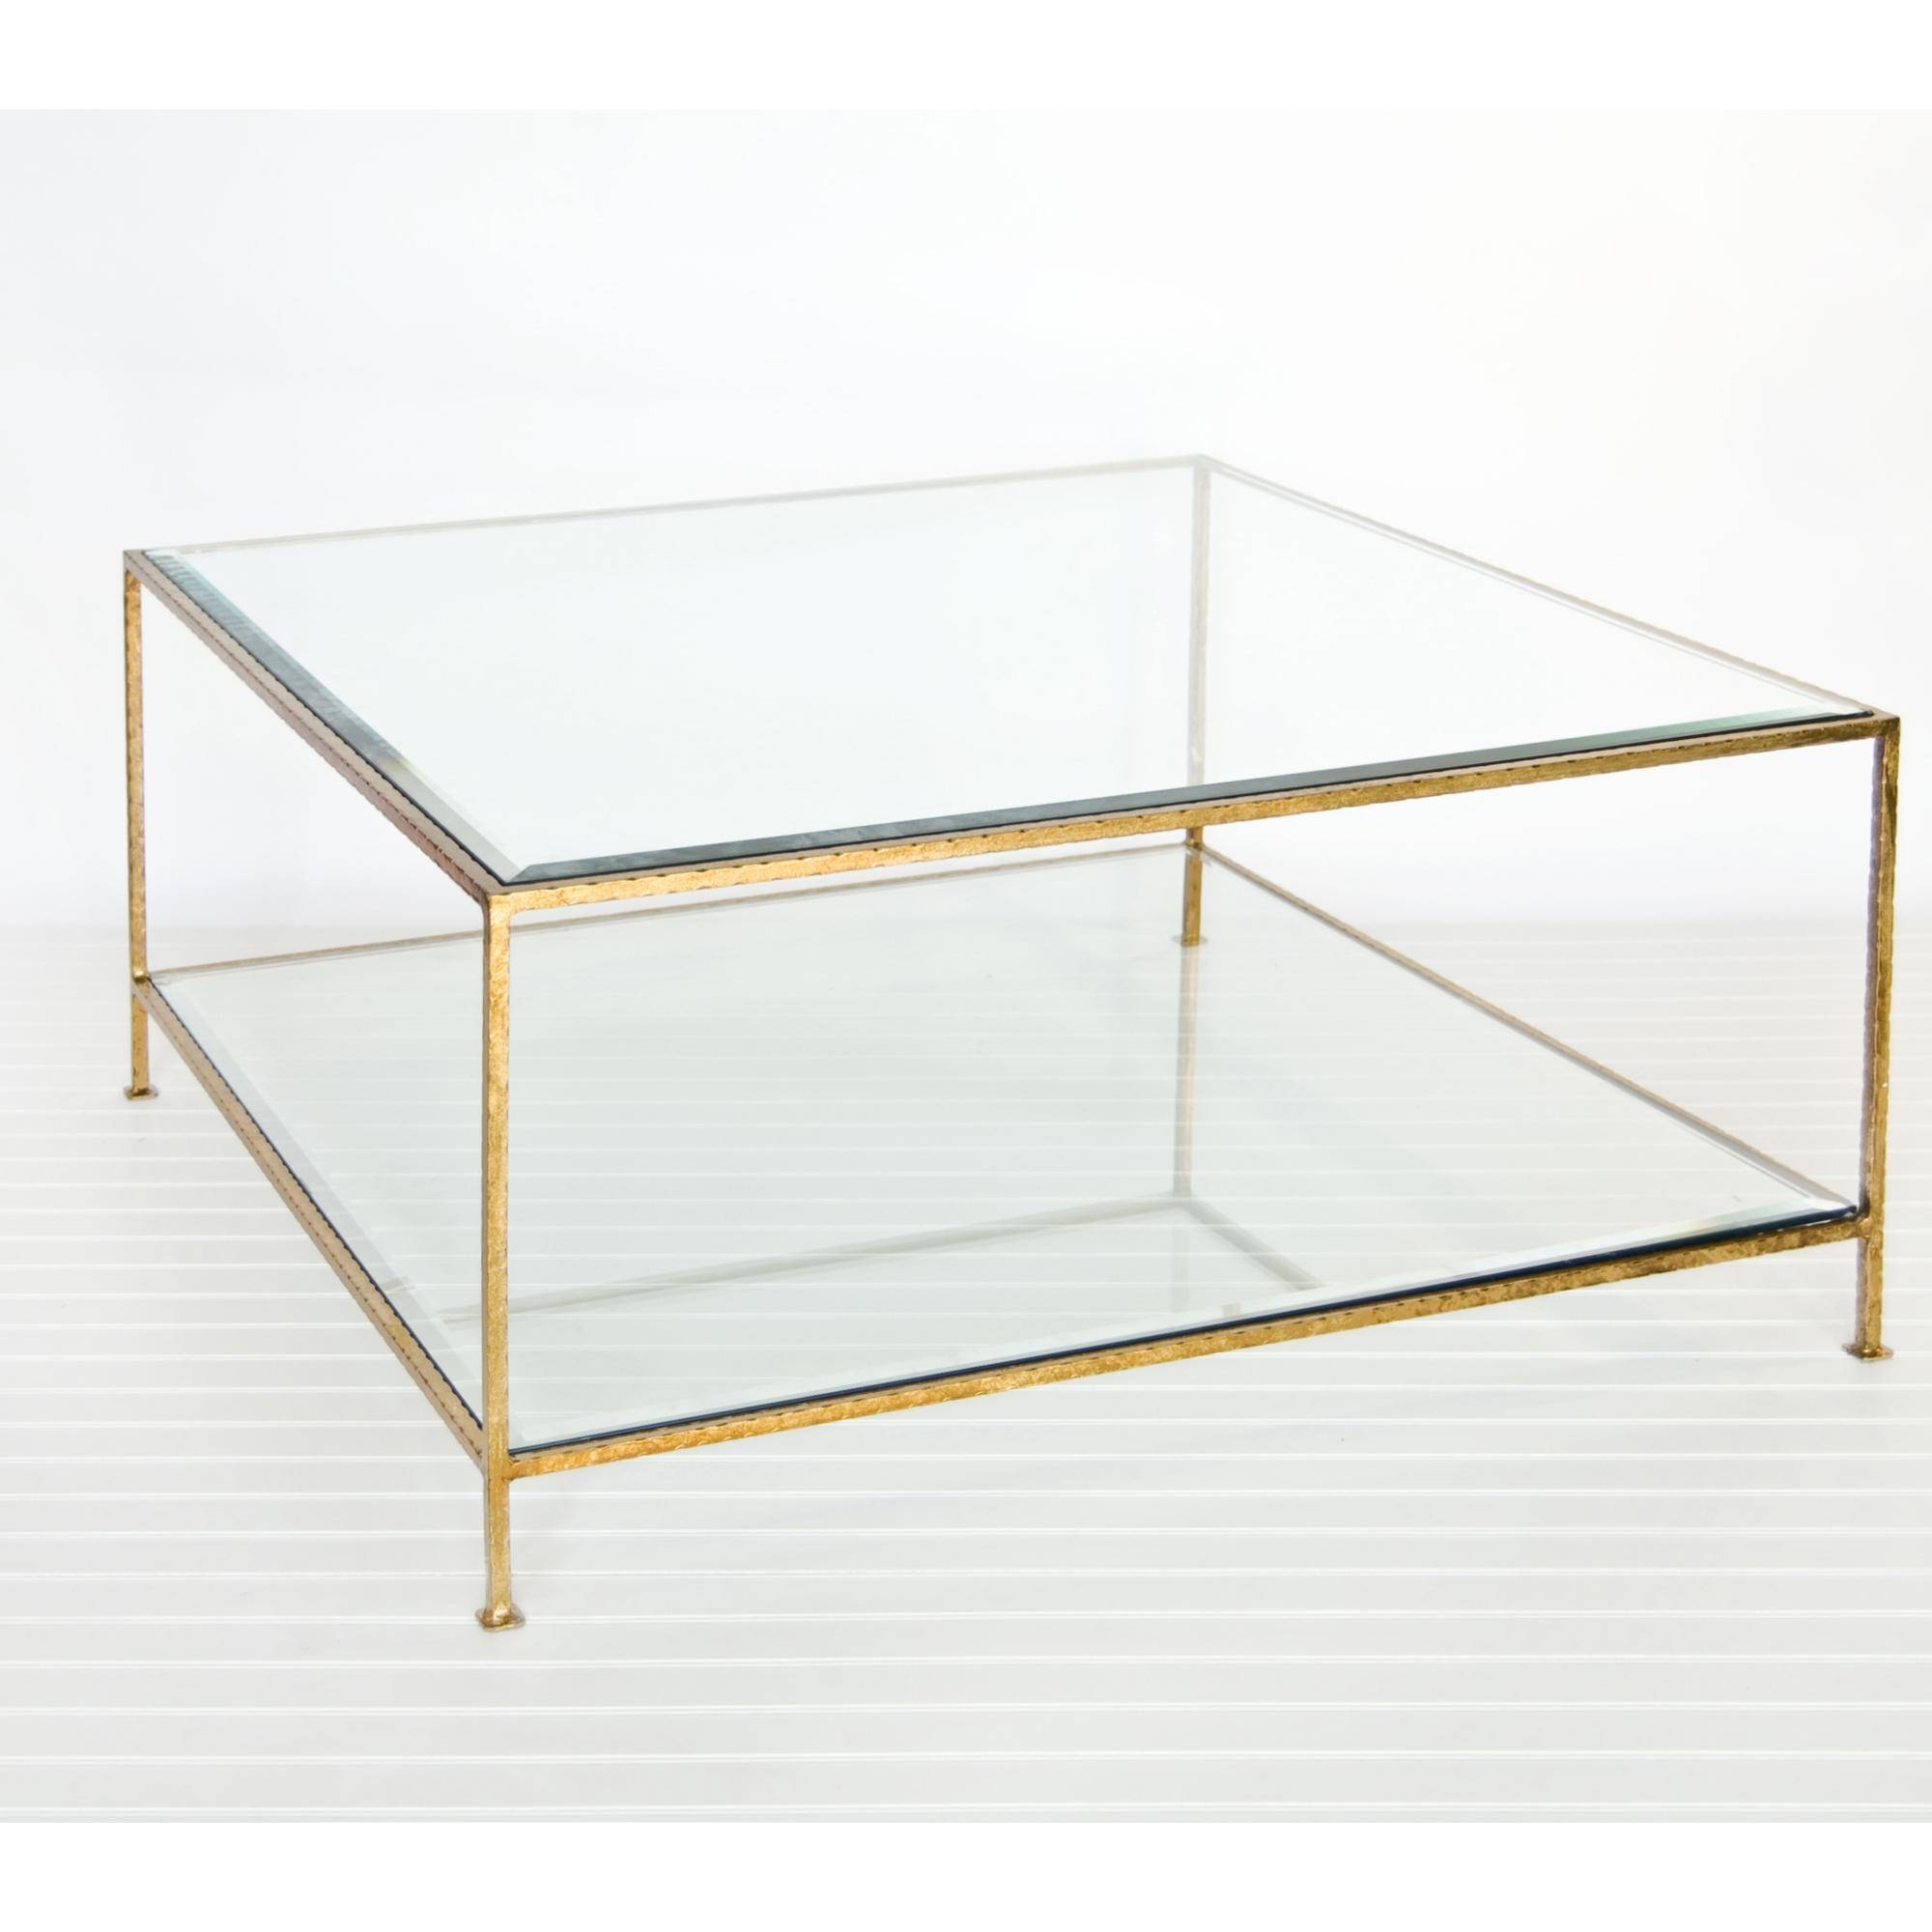 Coffee Table: Fascinating Large Glass Coffee Table Designs Small regarding Large Square Glass Coffee Tables (Image 13 of 30)